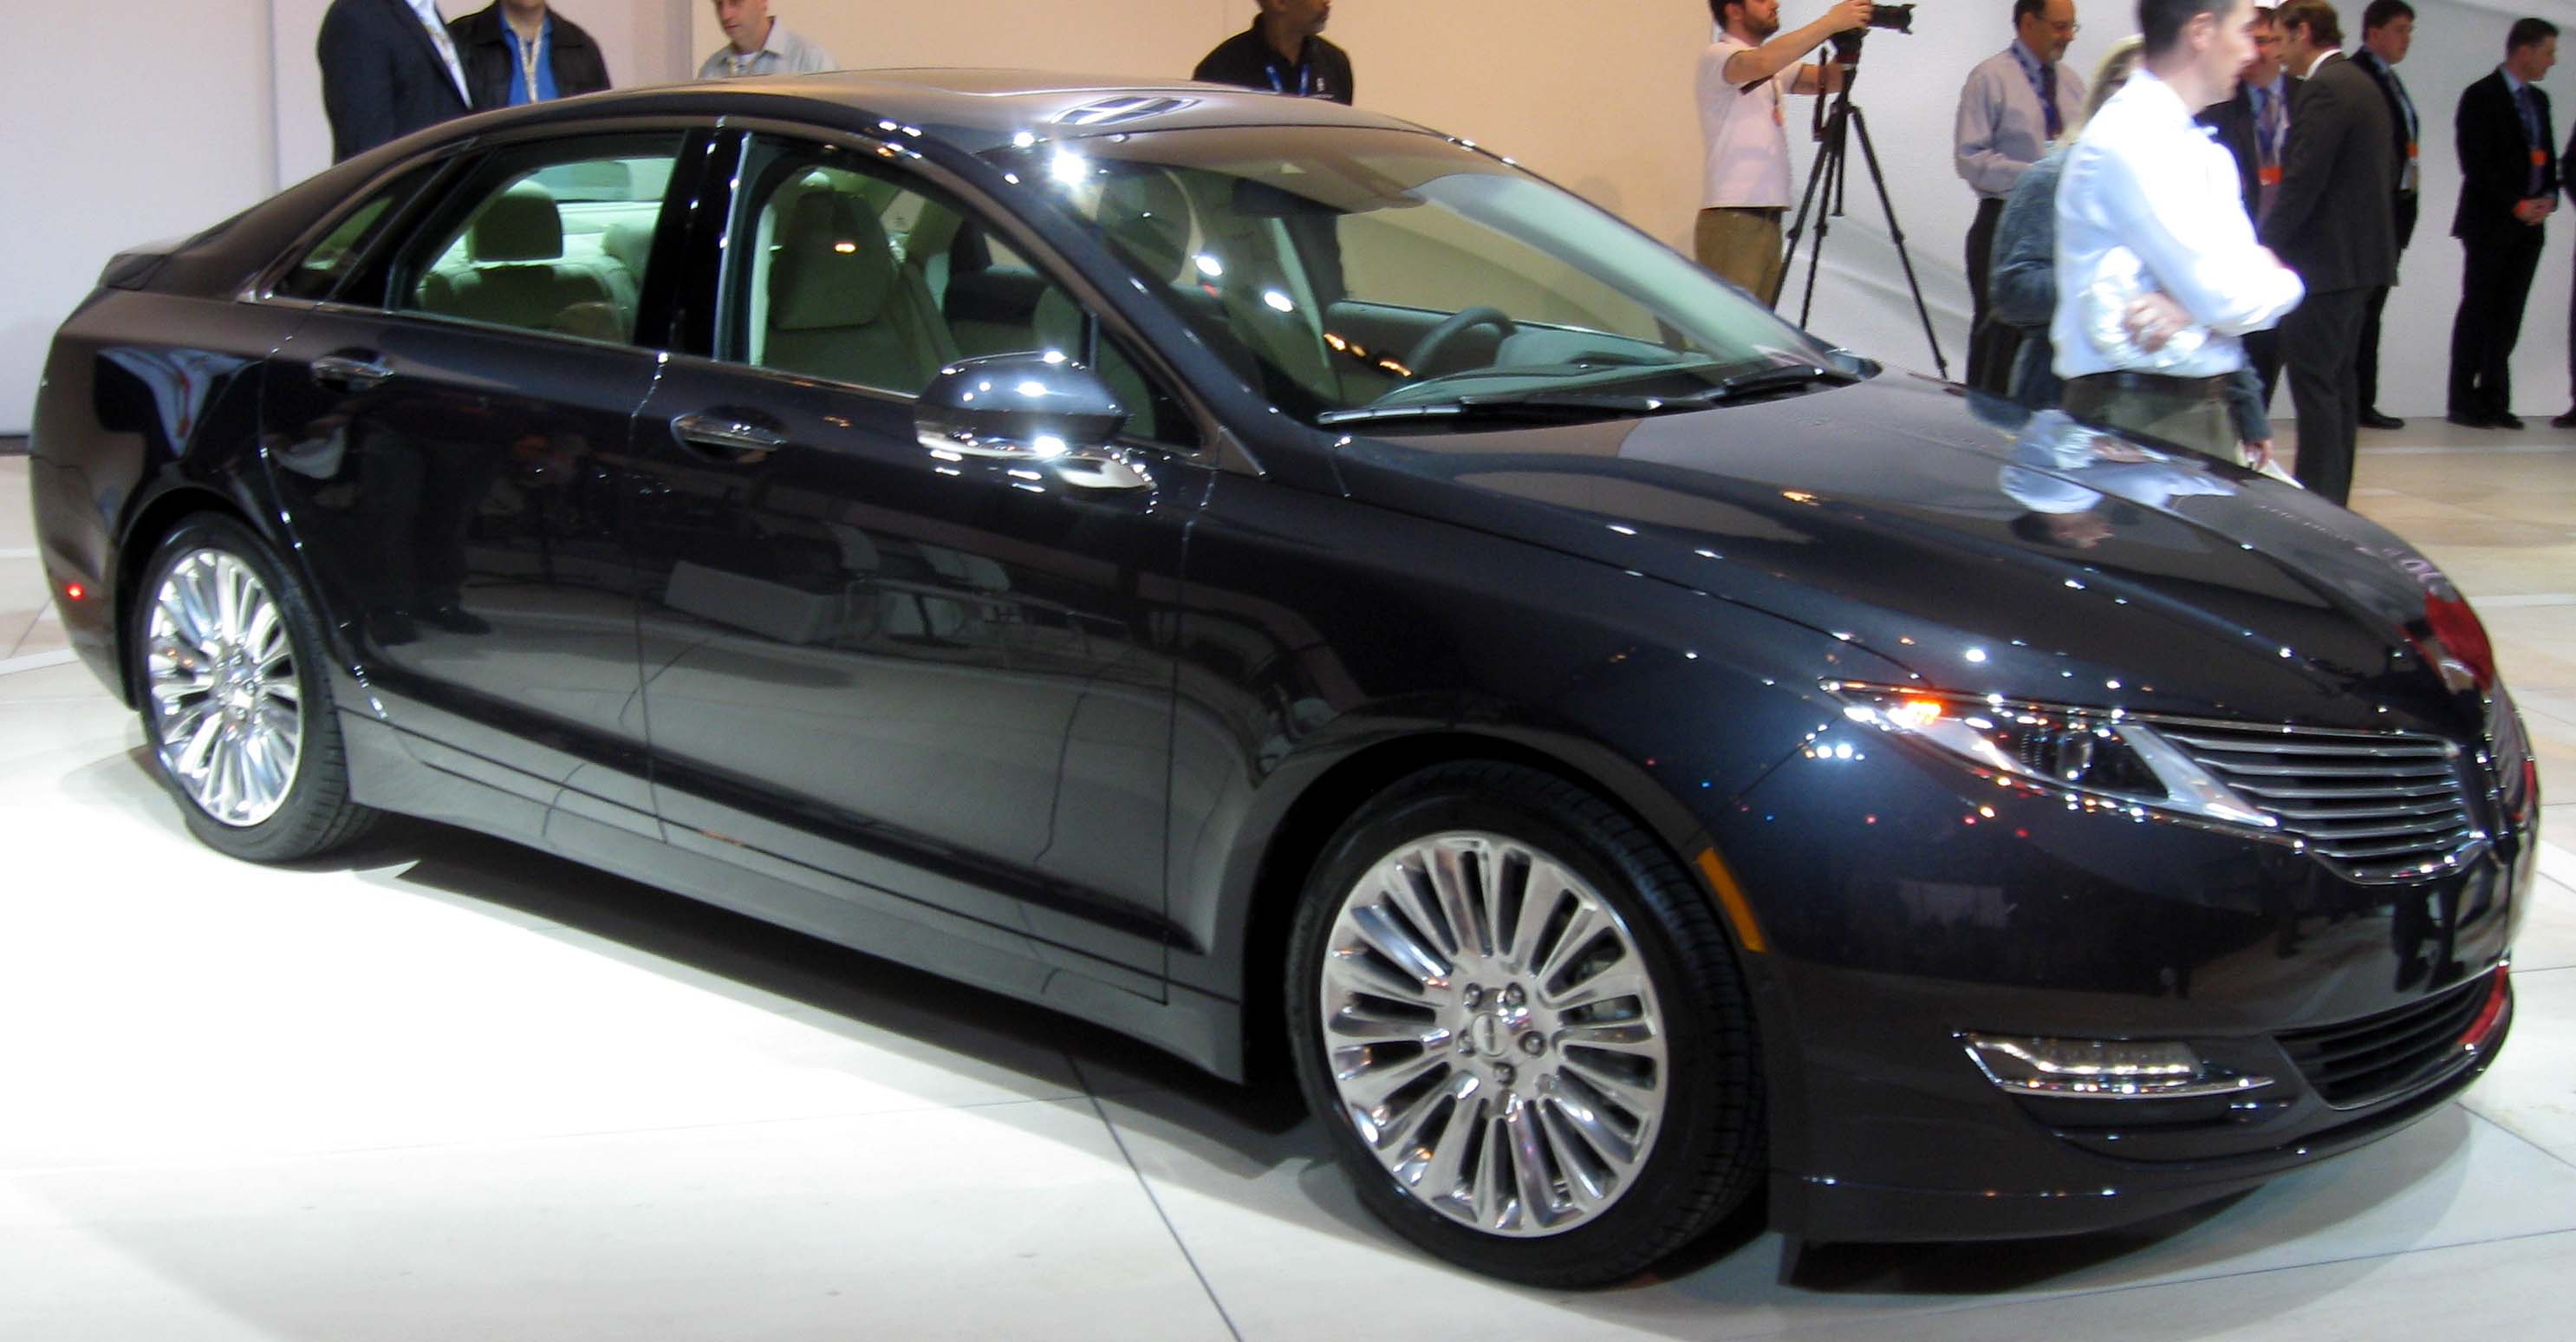 pa college fwd cars for bedford mkz lincoln reserve state used cargurus sale l in